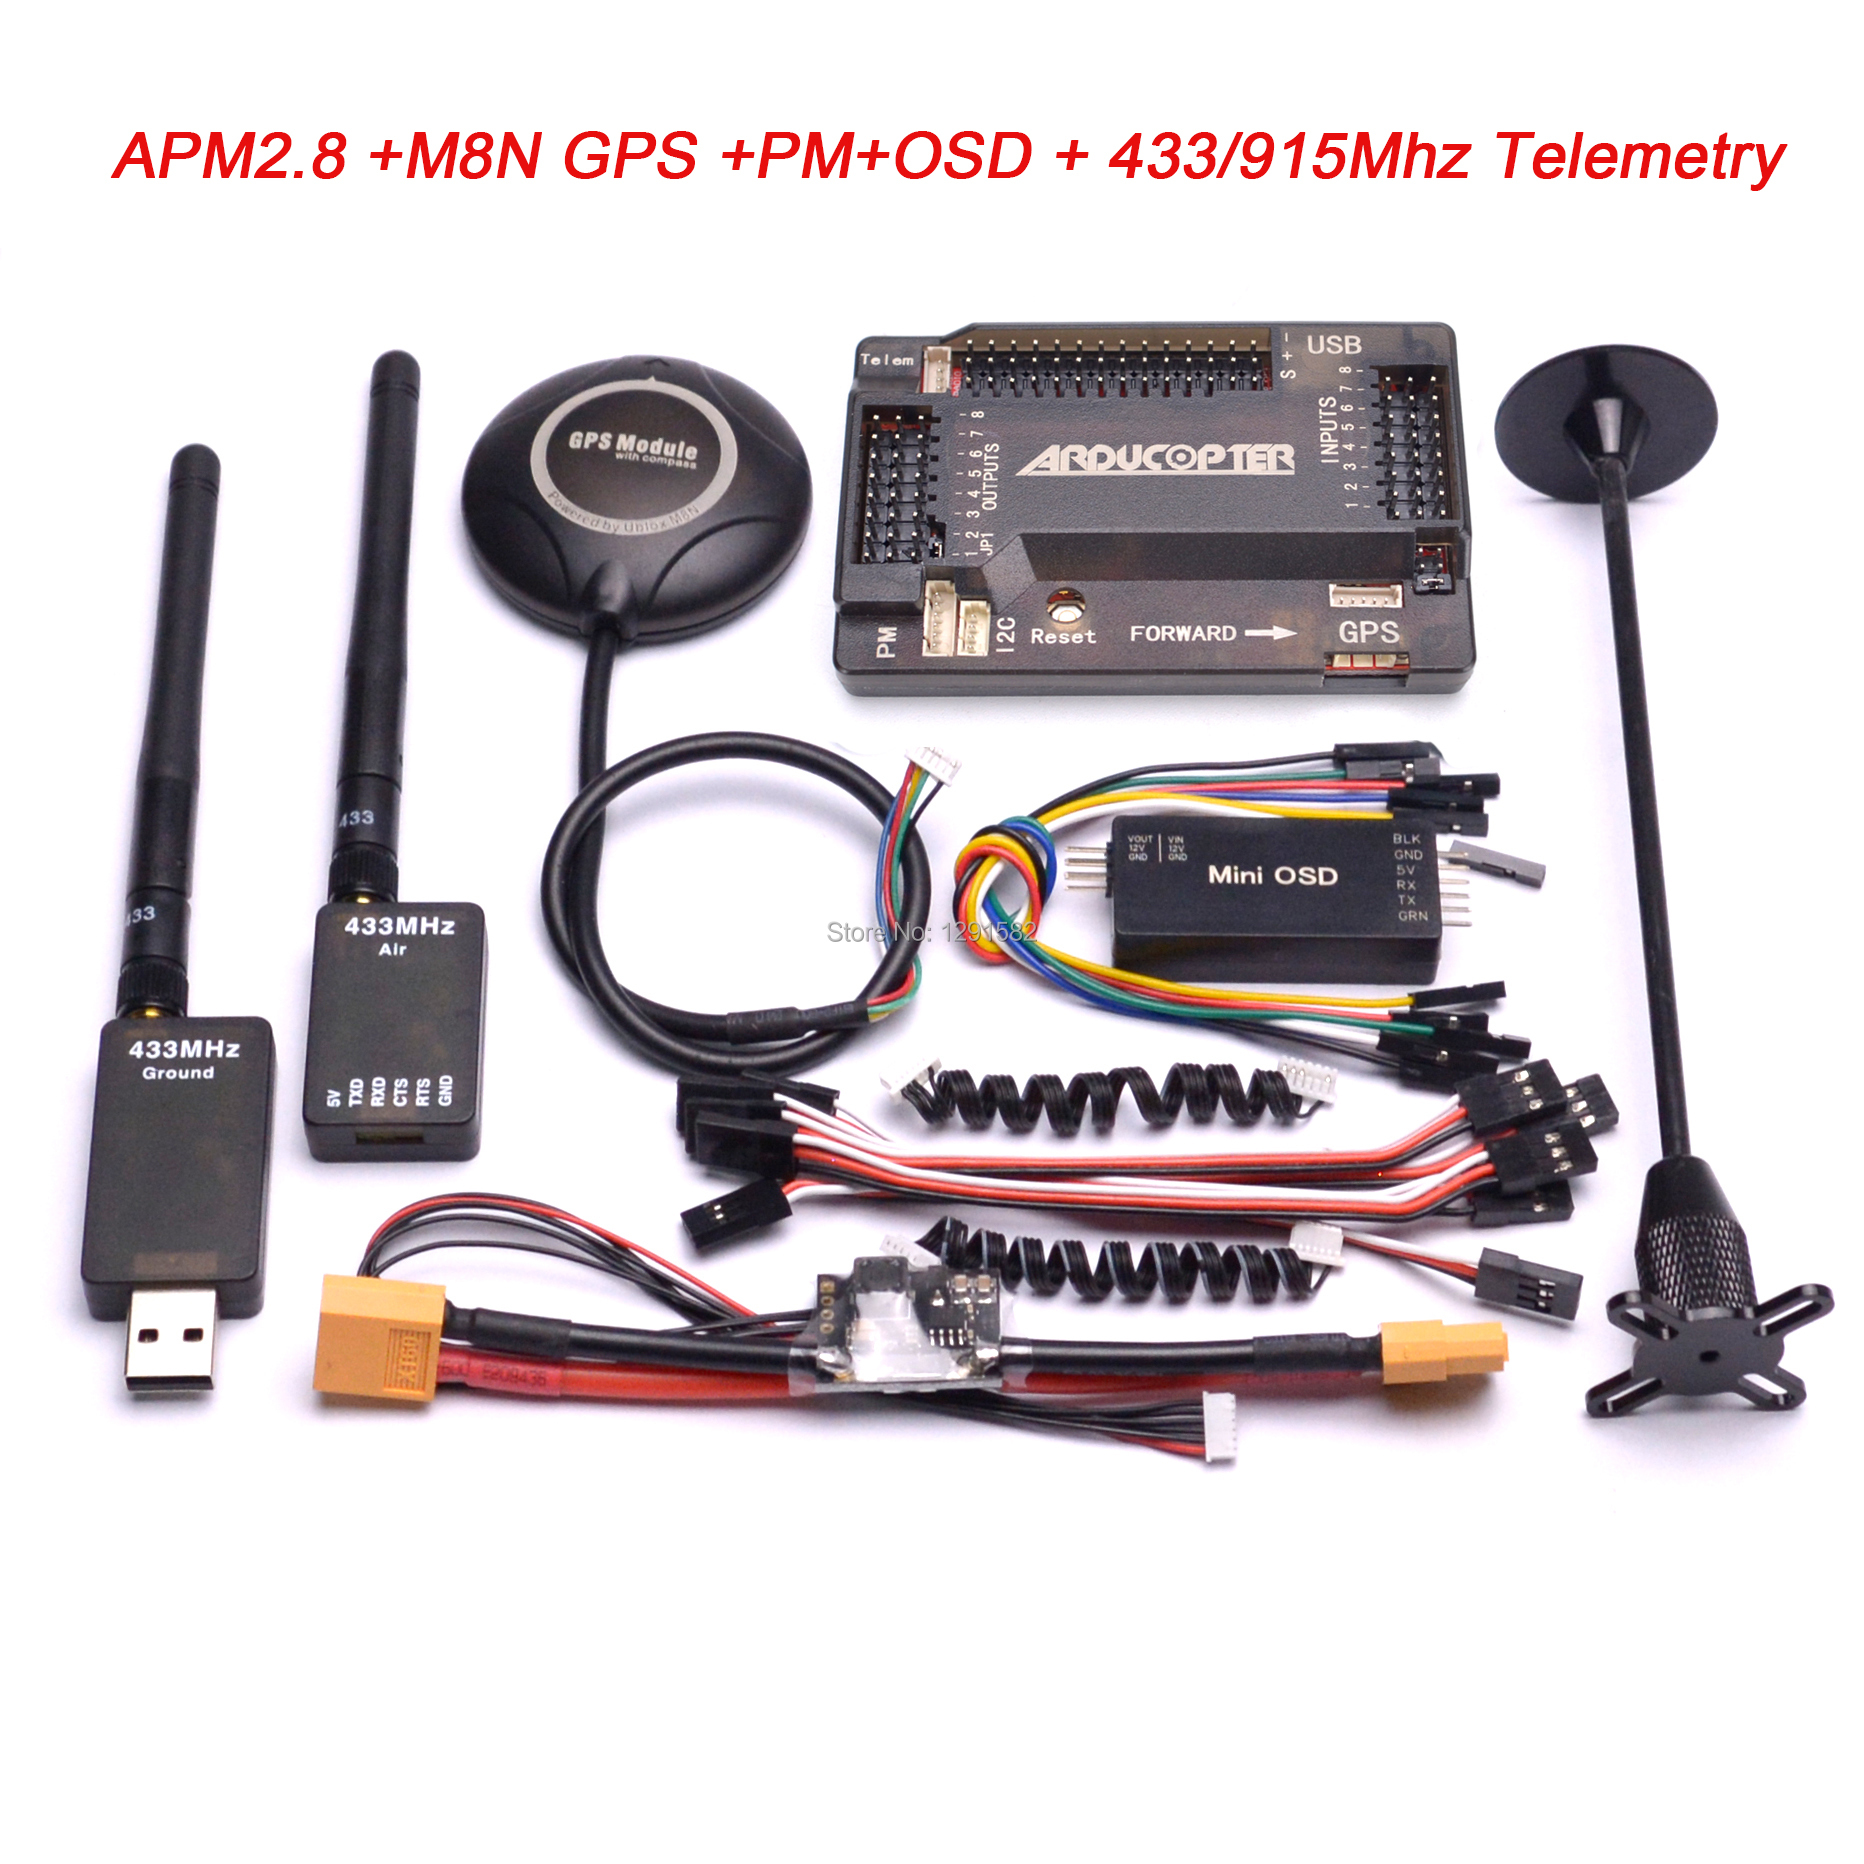 APM2.8 APM 2.8 Flight Controller M8N 8N GPS Compass + Power Moudle + Mini OSD + 915Mhz / 433Mhz 100mw / 500mw Telemetry Kit